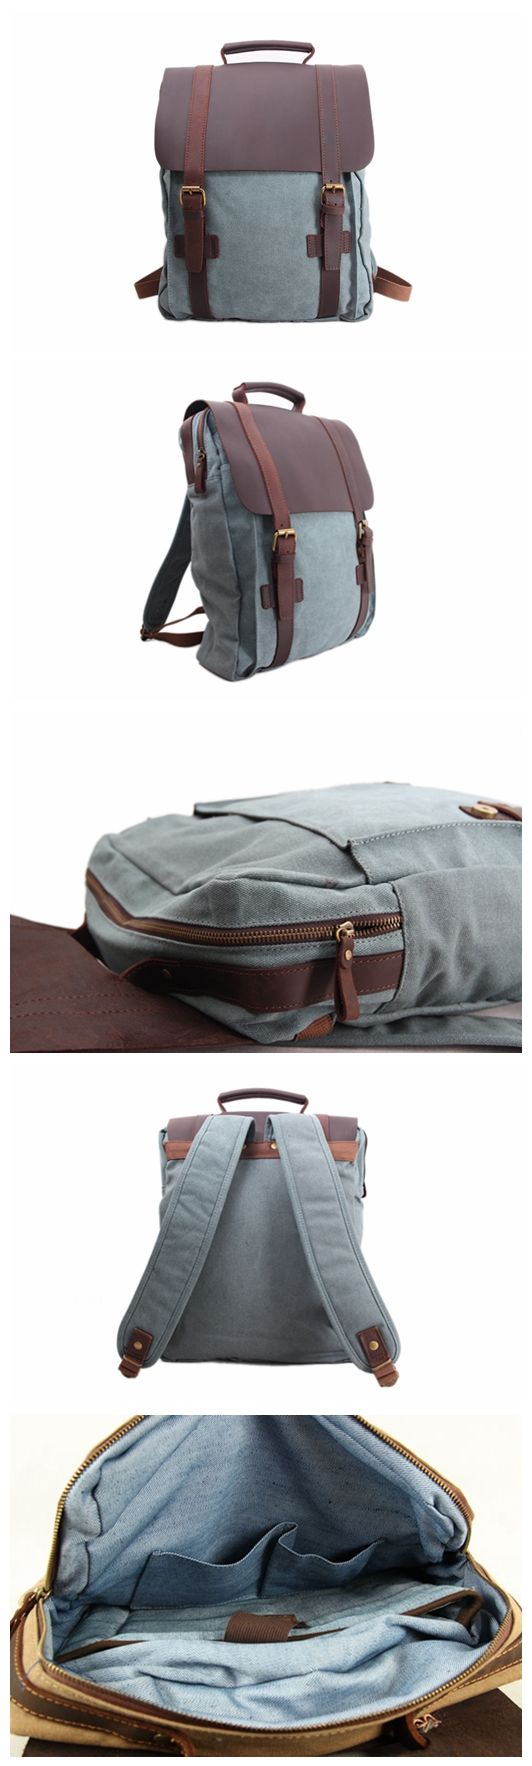 HANDMADE CANVAS LEATHER BACKPACK, WAXED CANVAS BACKPACK SCHOOL BACKPACK